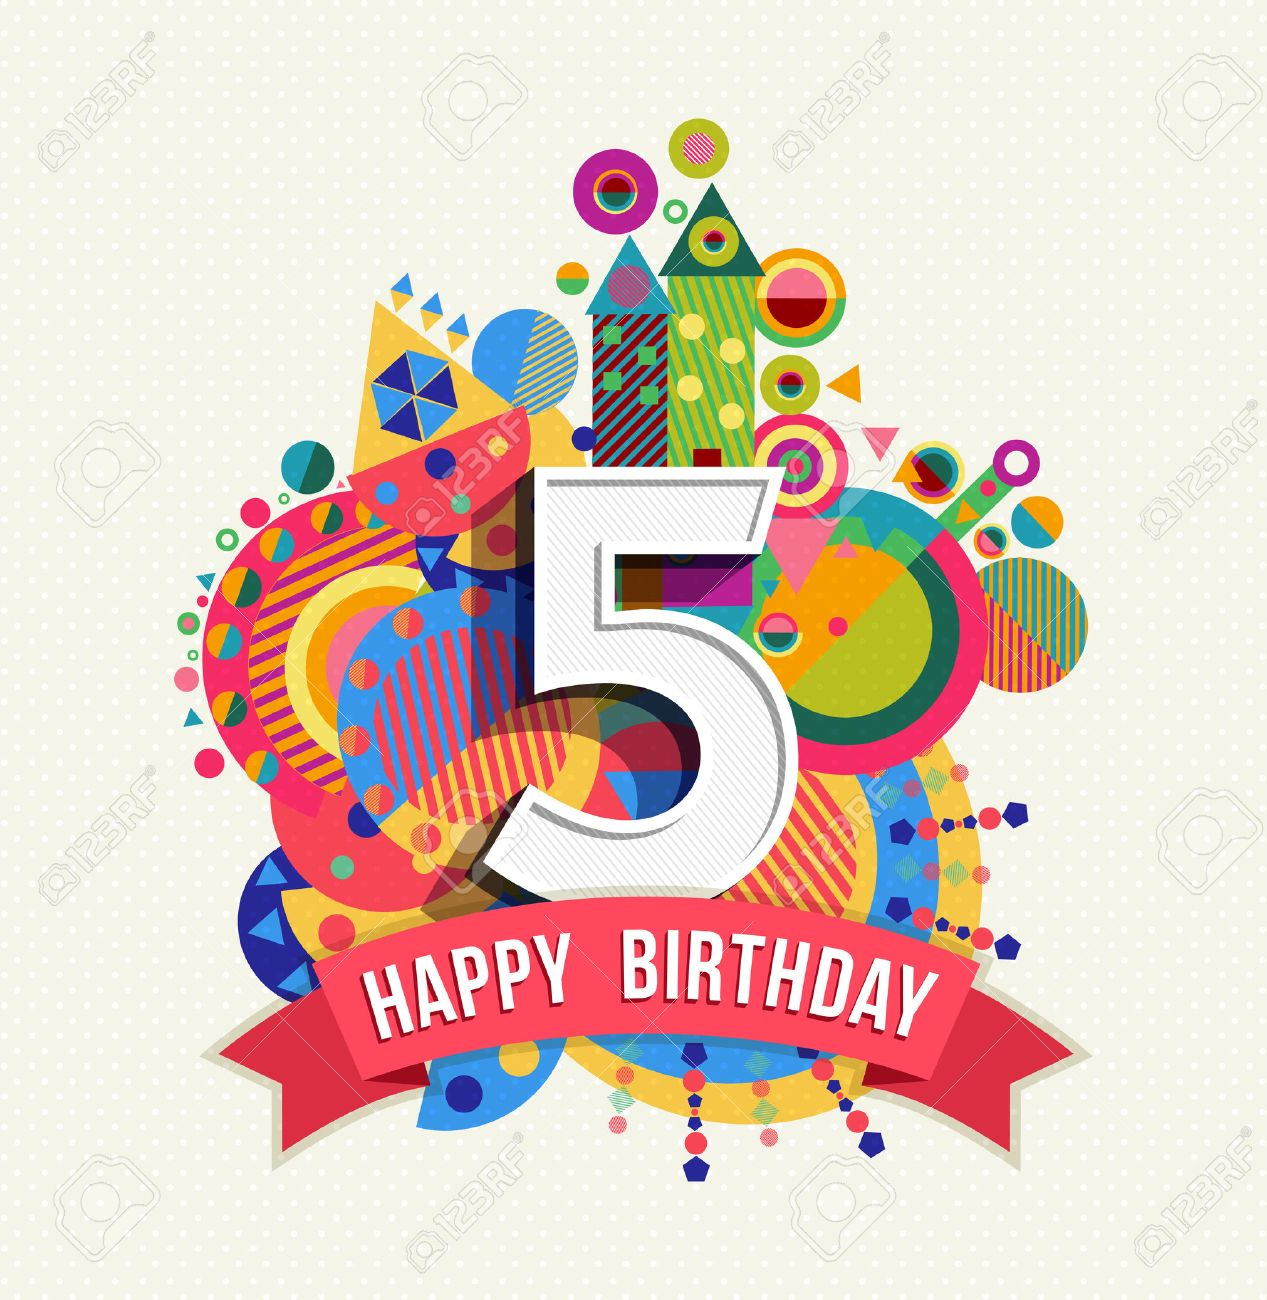 Happy Birthday five 5 year, fun design with number, text label and colorful geometry element. Ideal for poster or greeting card. EPS10 vector. - 50199047